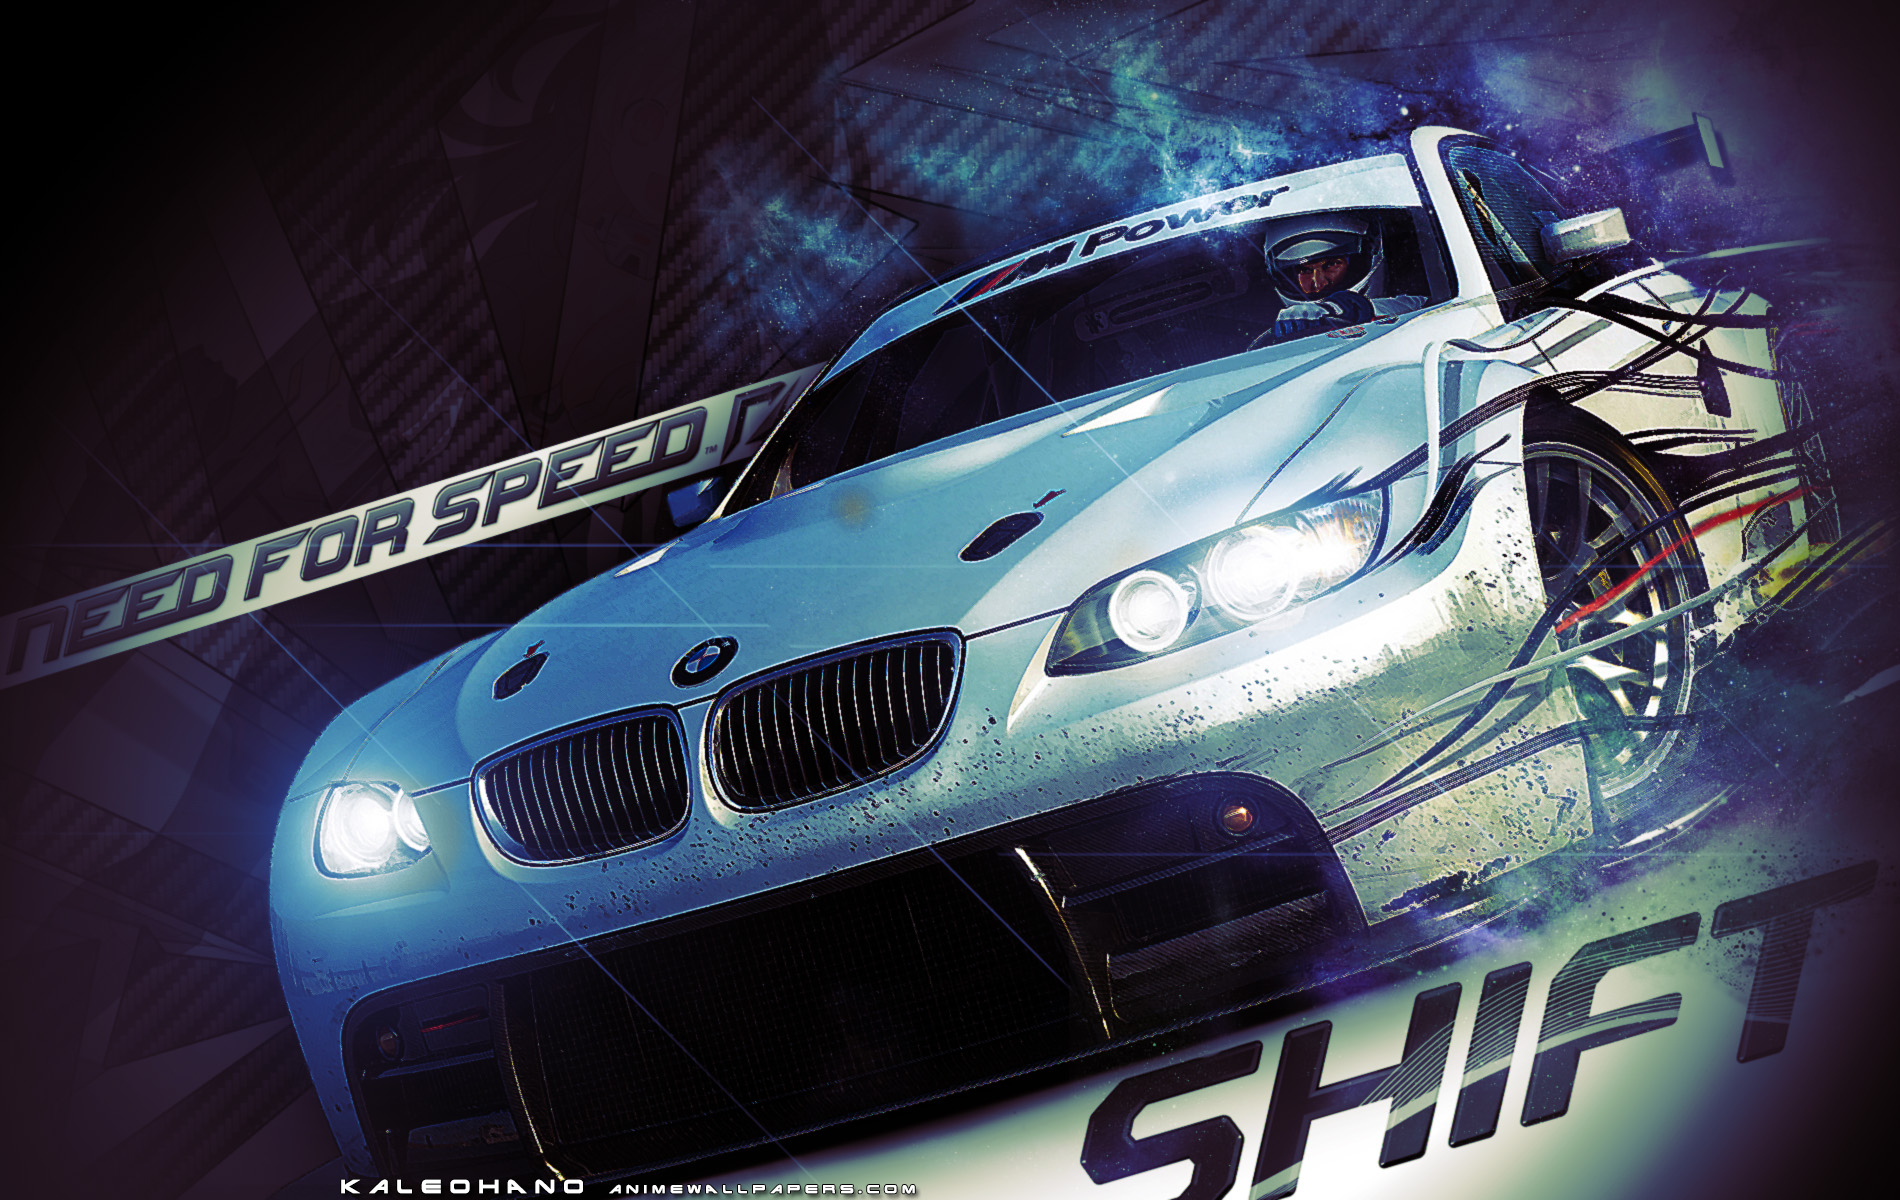 Need For Speed Game Wallpaper # 1